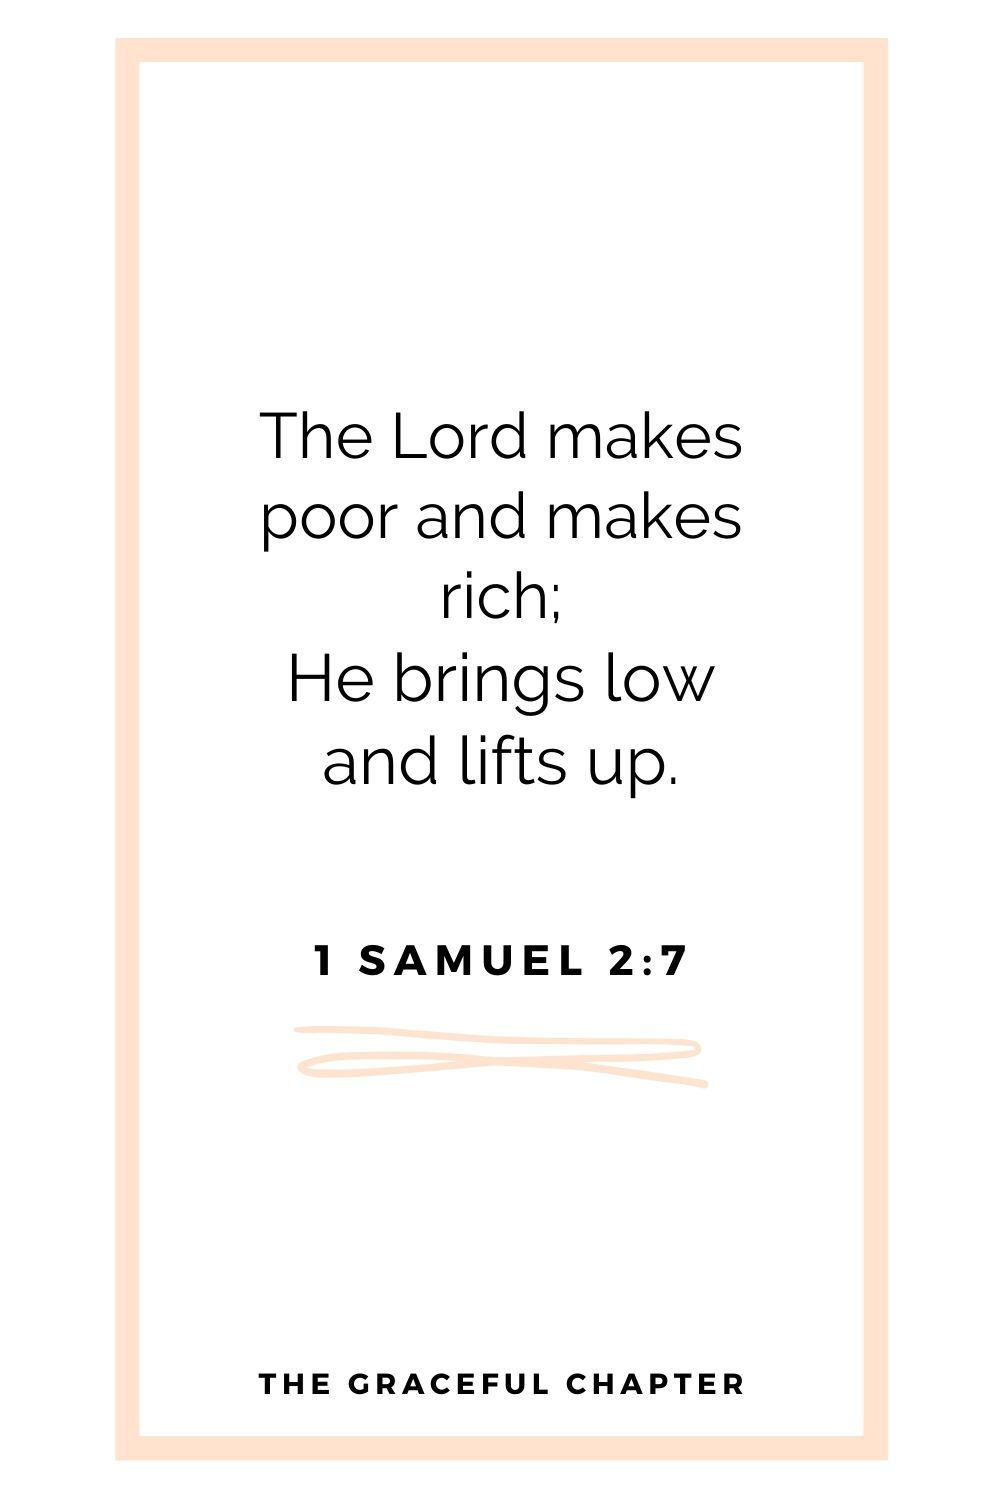 The Lord makes poor and makes rich; He brings low and lifts up. 1 Samuel 2:7